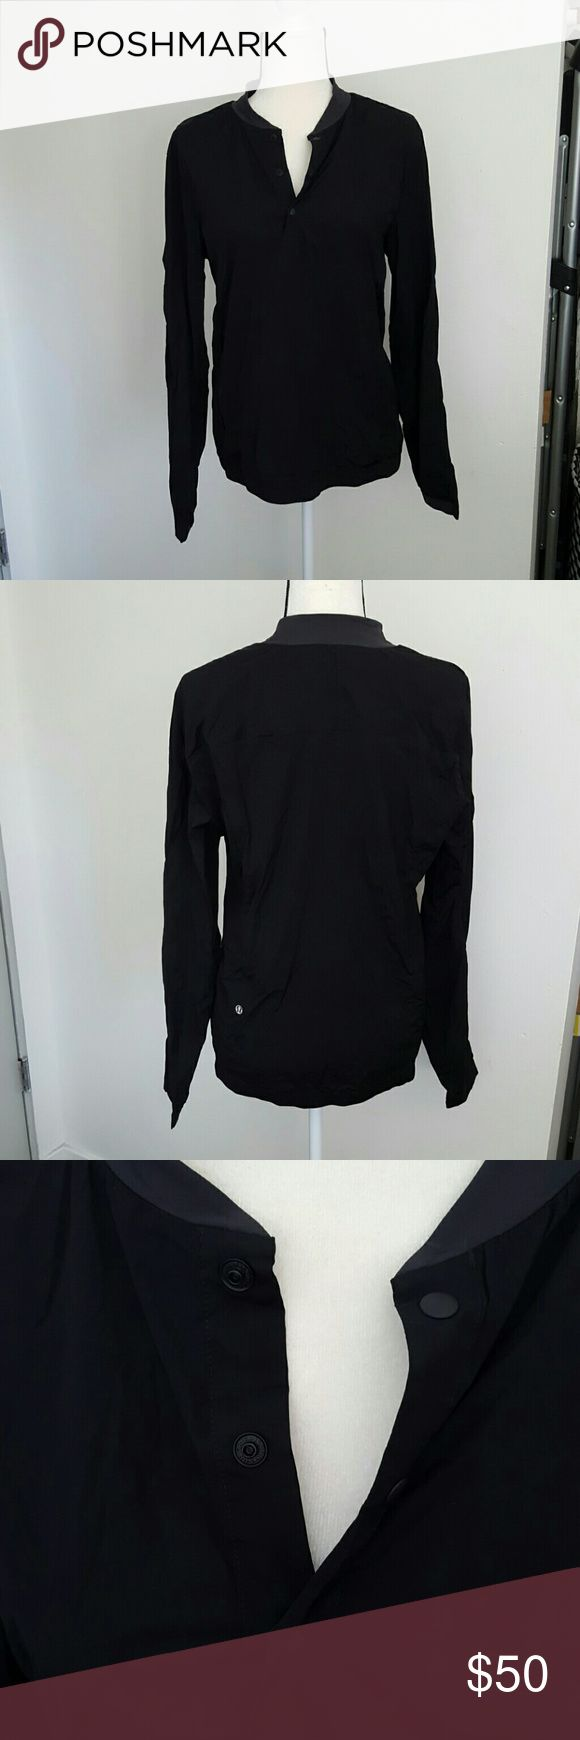 Lululemon Men's Windbreaker Pullover Lululemon Men's black Windbreaker Pullover with snaps at the neckline and a contrast gray collar. Excellent condition no flaws. lululemon athletica Jackets & Coats Lightweight & Shirt Jackets